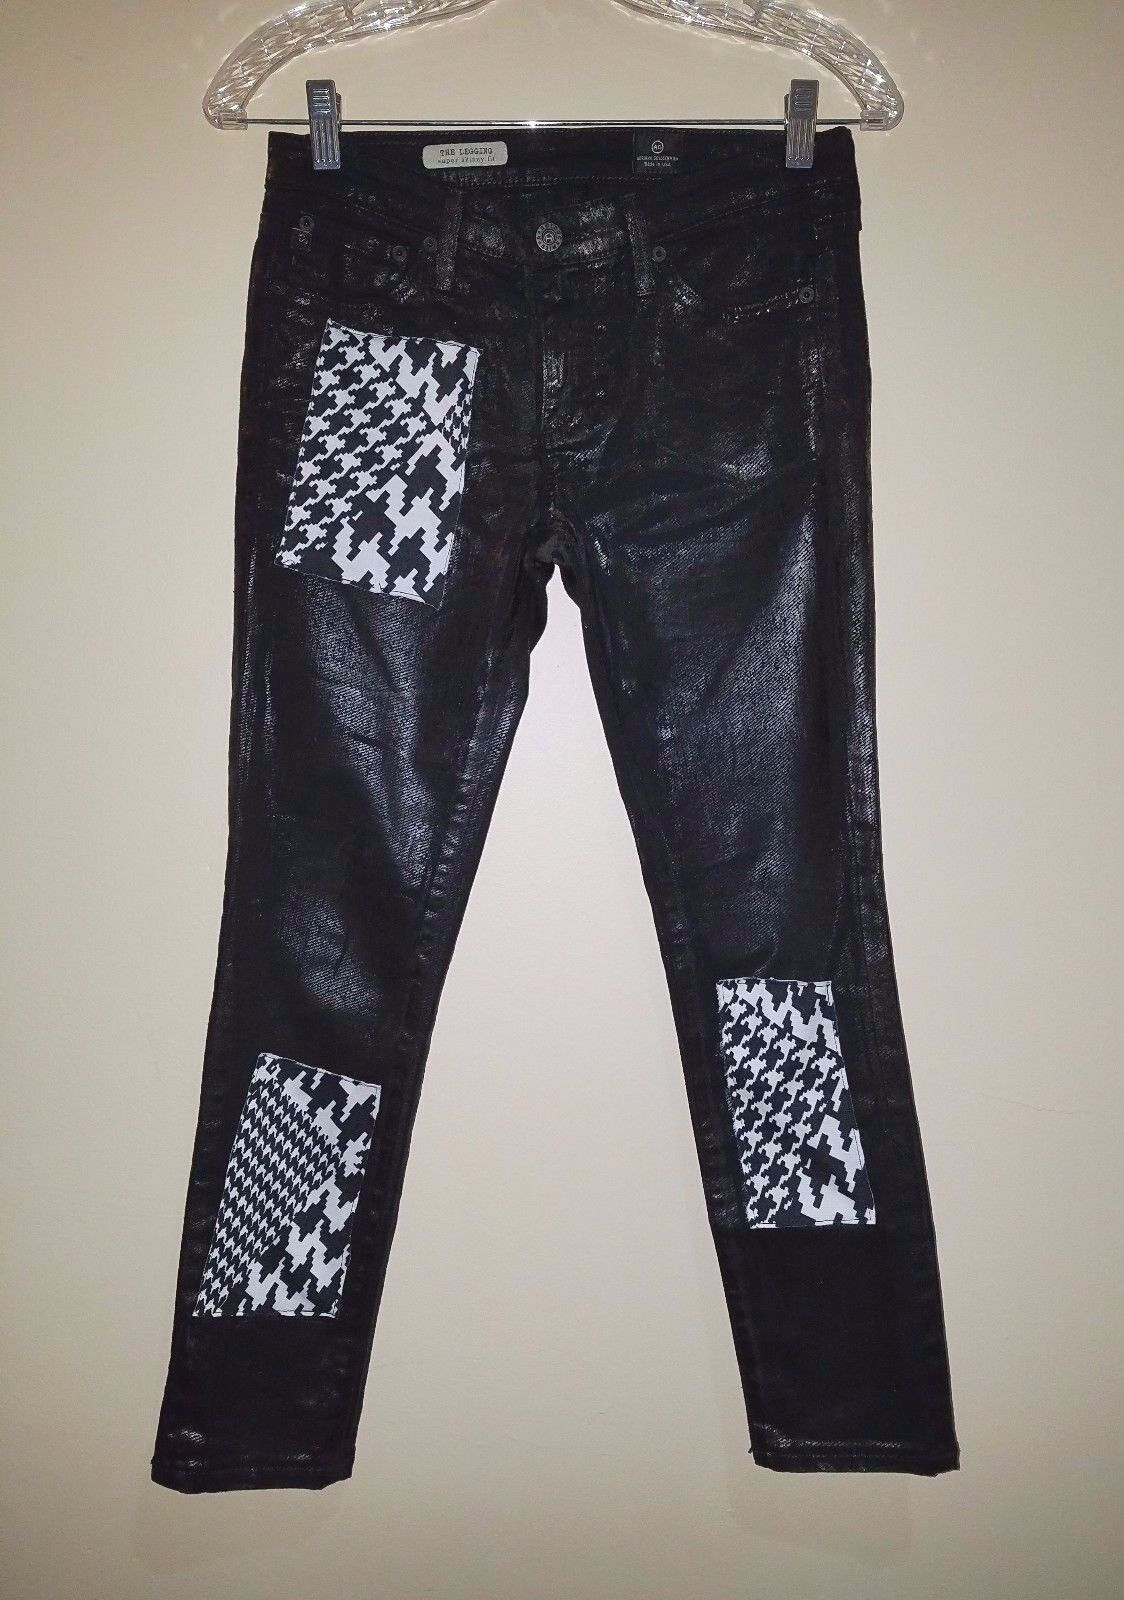 ADRIANO goldSCHMIED AG The Legging Super Skinny Blk Detailed Stretch Jean Sz 26R